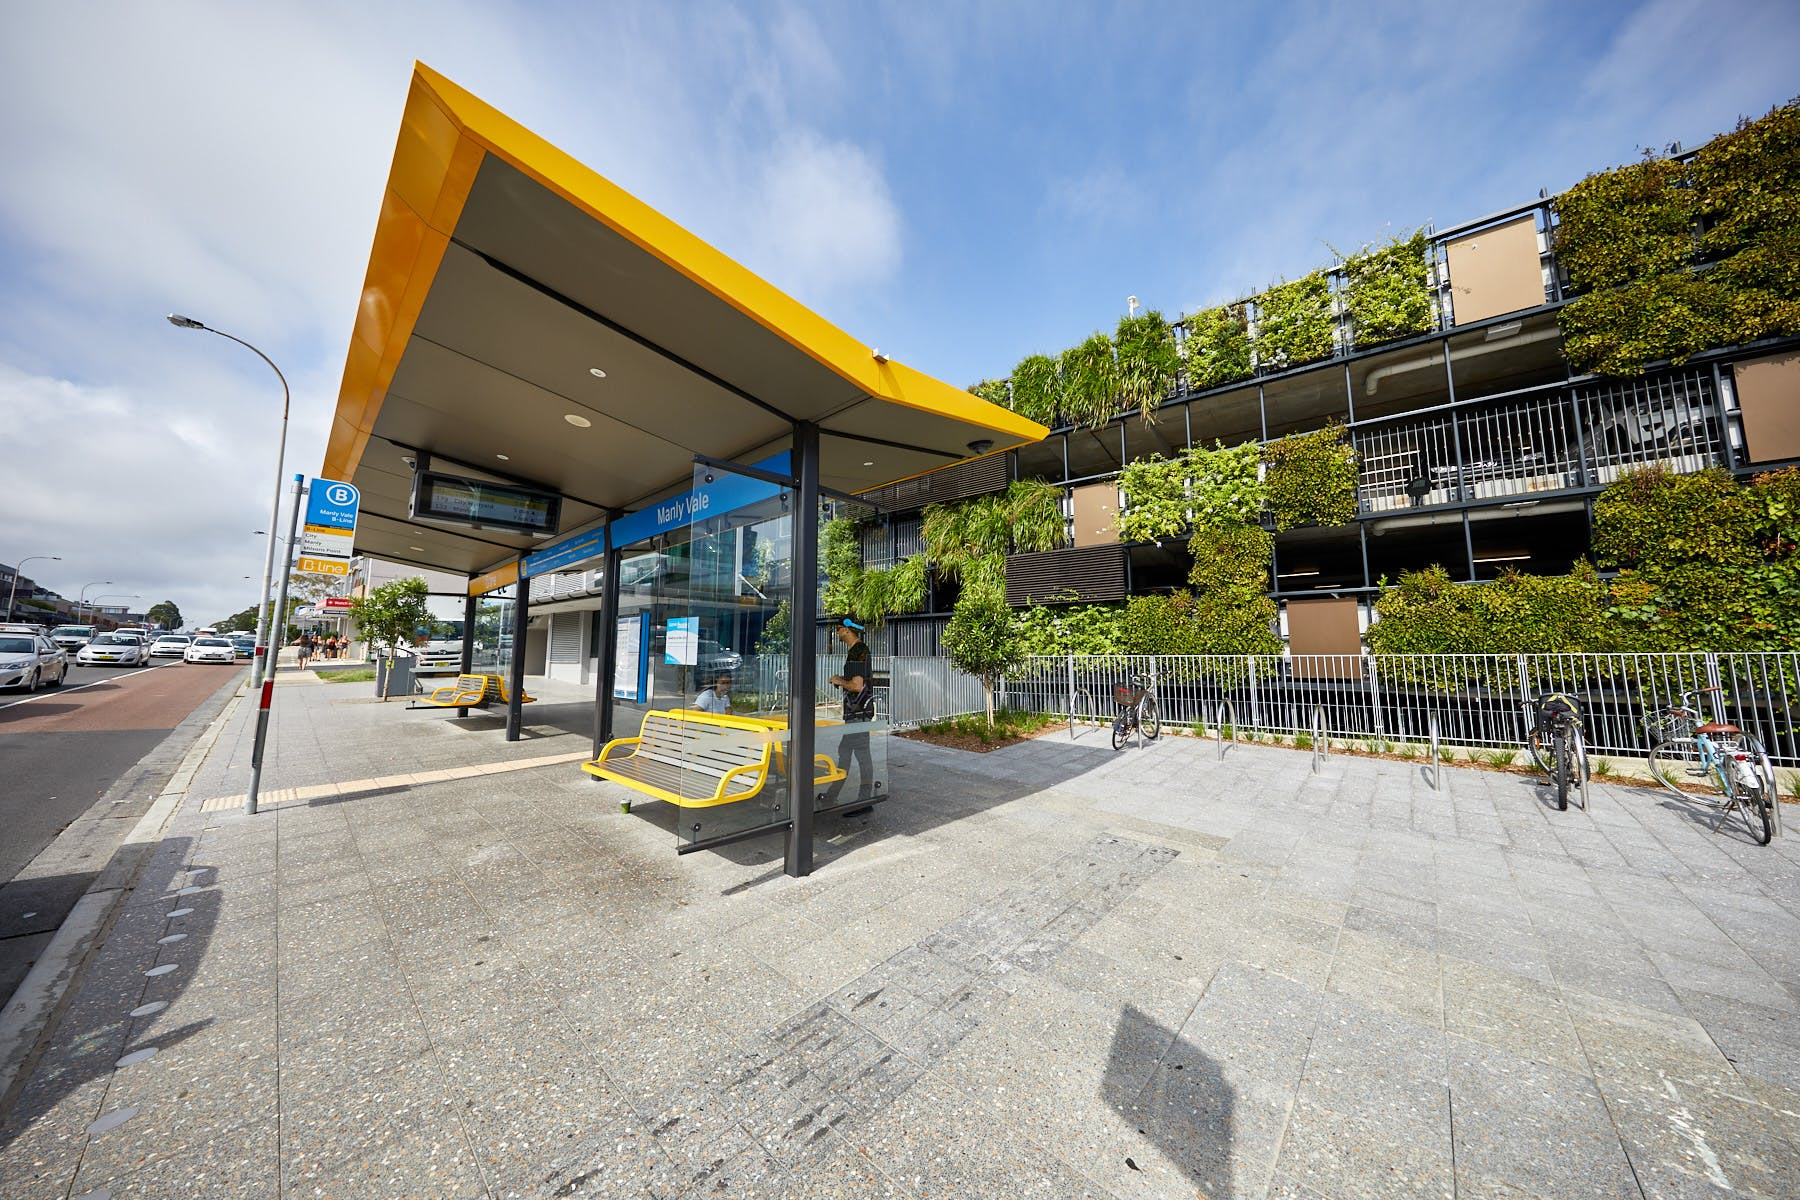 Citybound B-Line bus stop Manly Vale